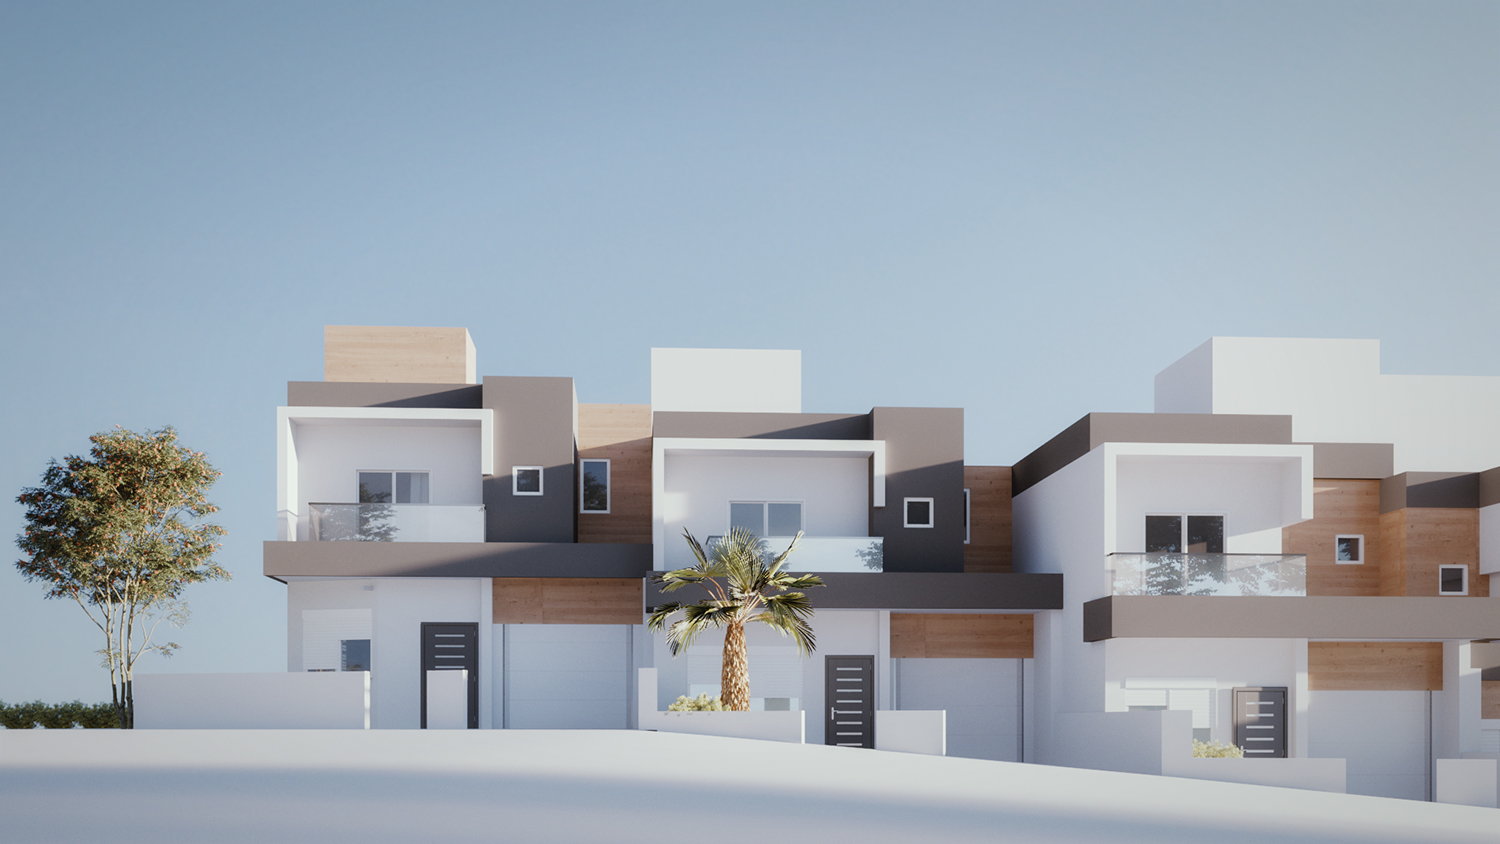 Elegant Modern Real Estate 3d Design For A Company By